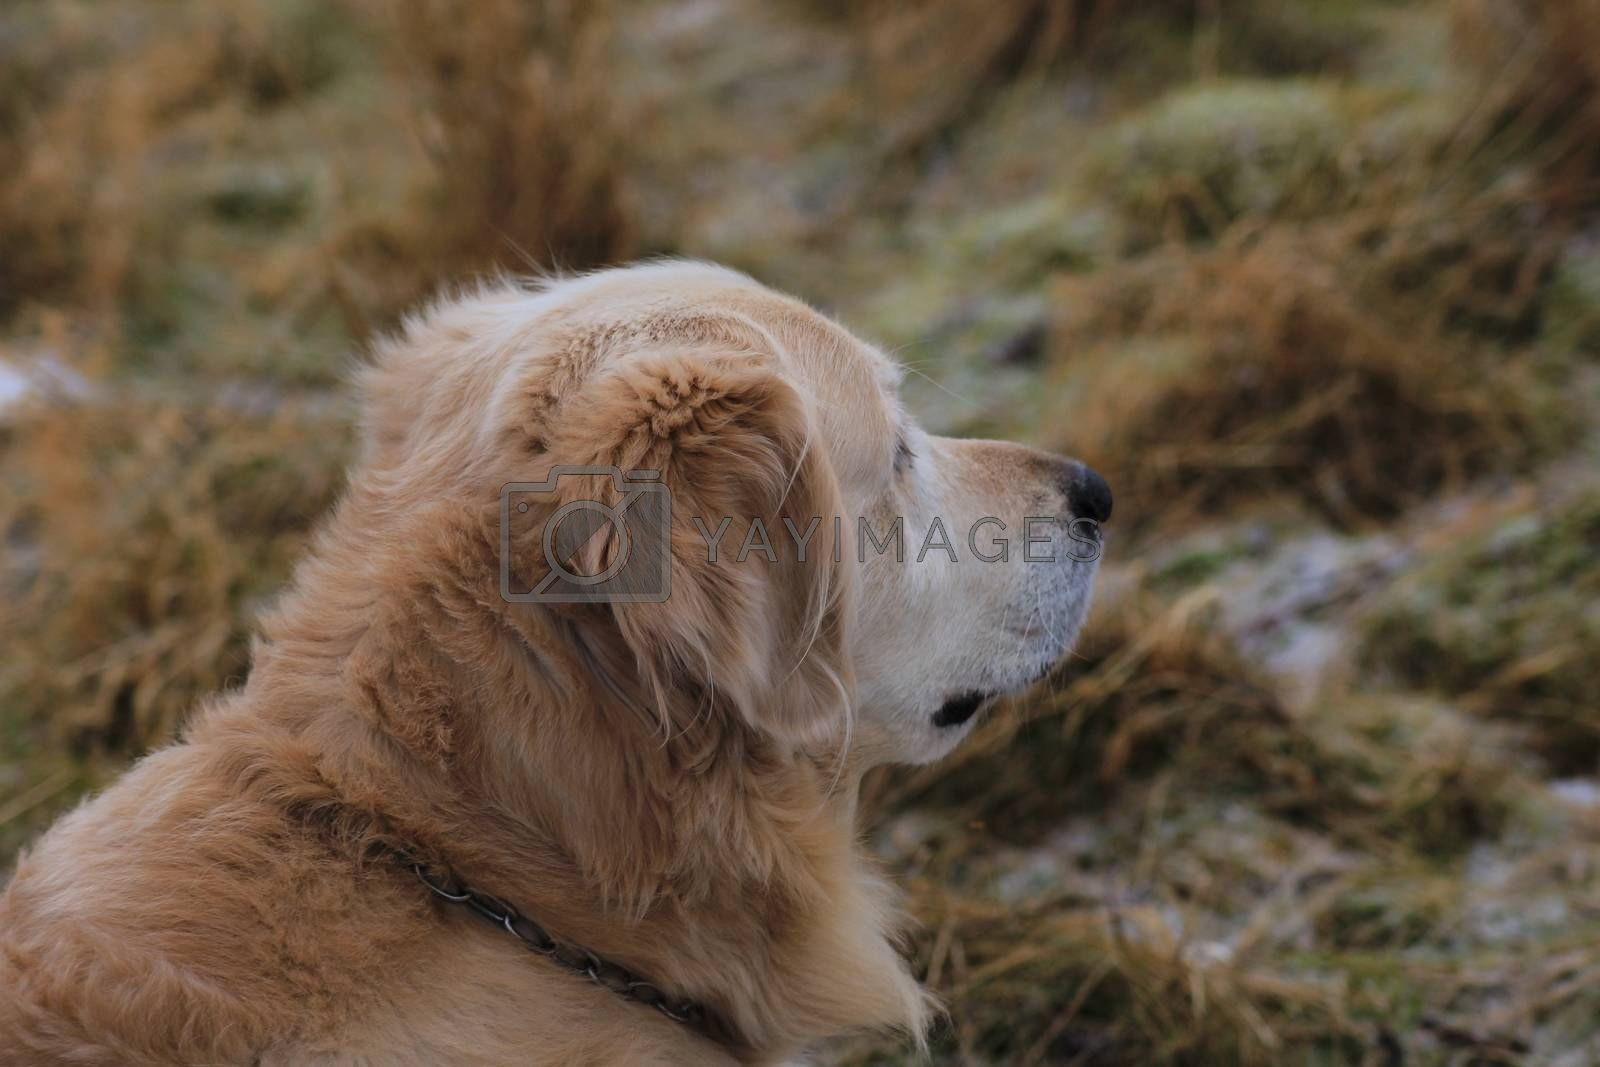 Royalty free image of Golden retrieve by ottar@rustand.us